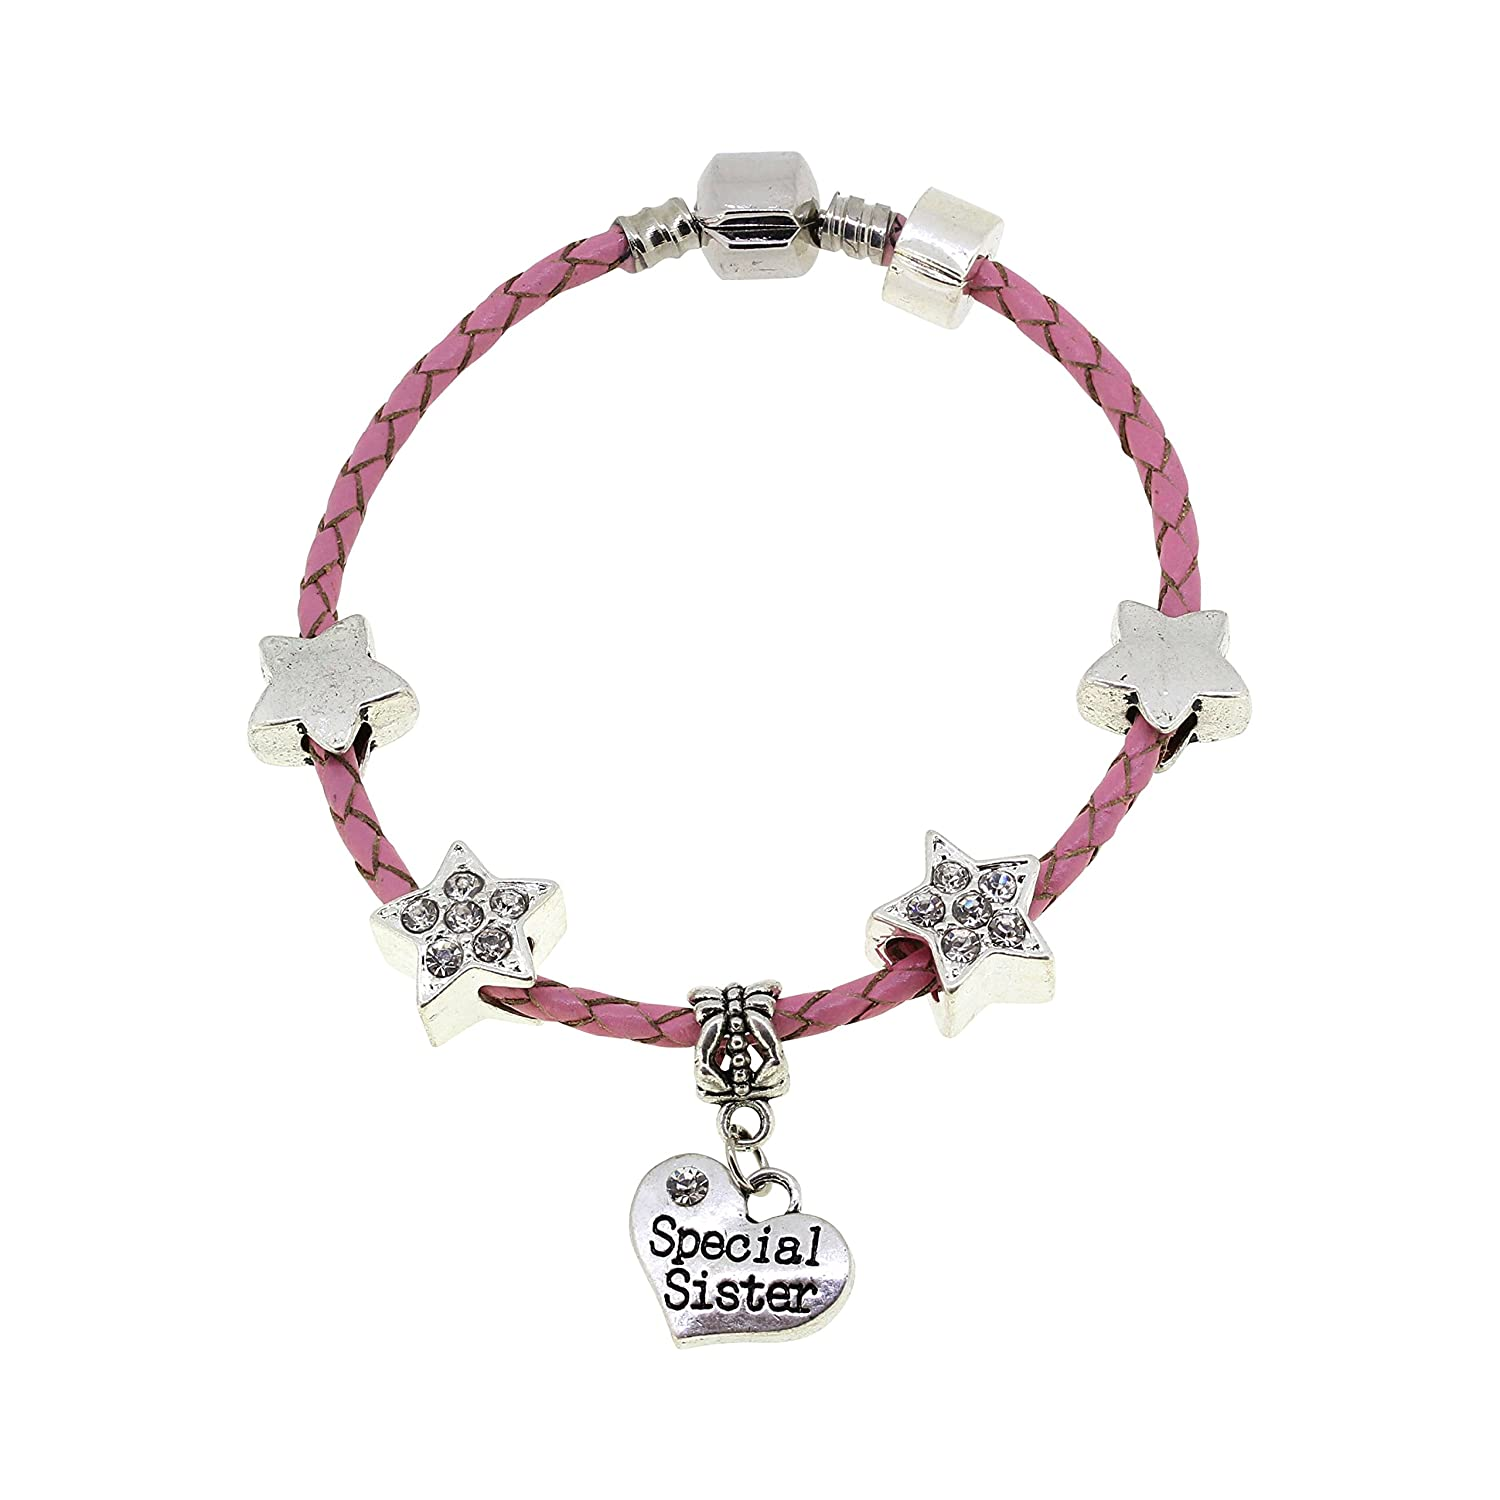 Big Sister You're a Star Pink Leather Charm Bracelet Gift Boxed Truly Charming 4040